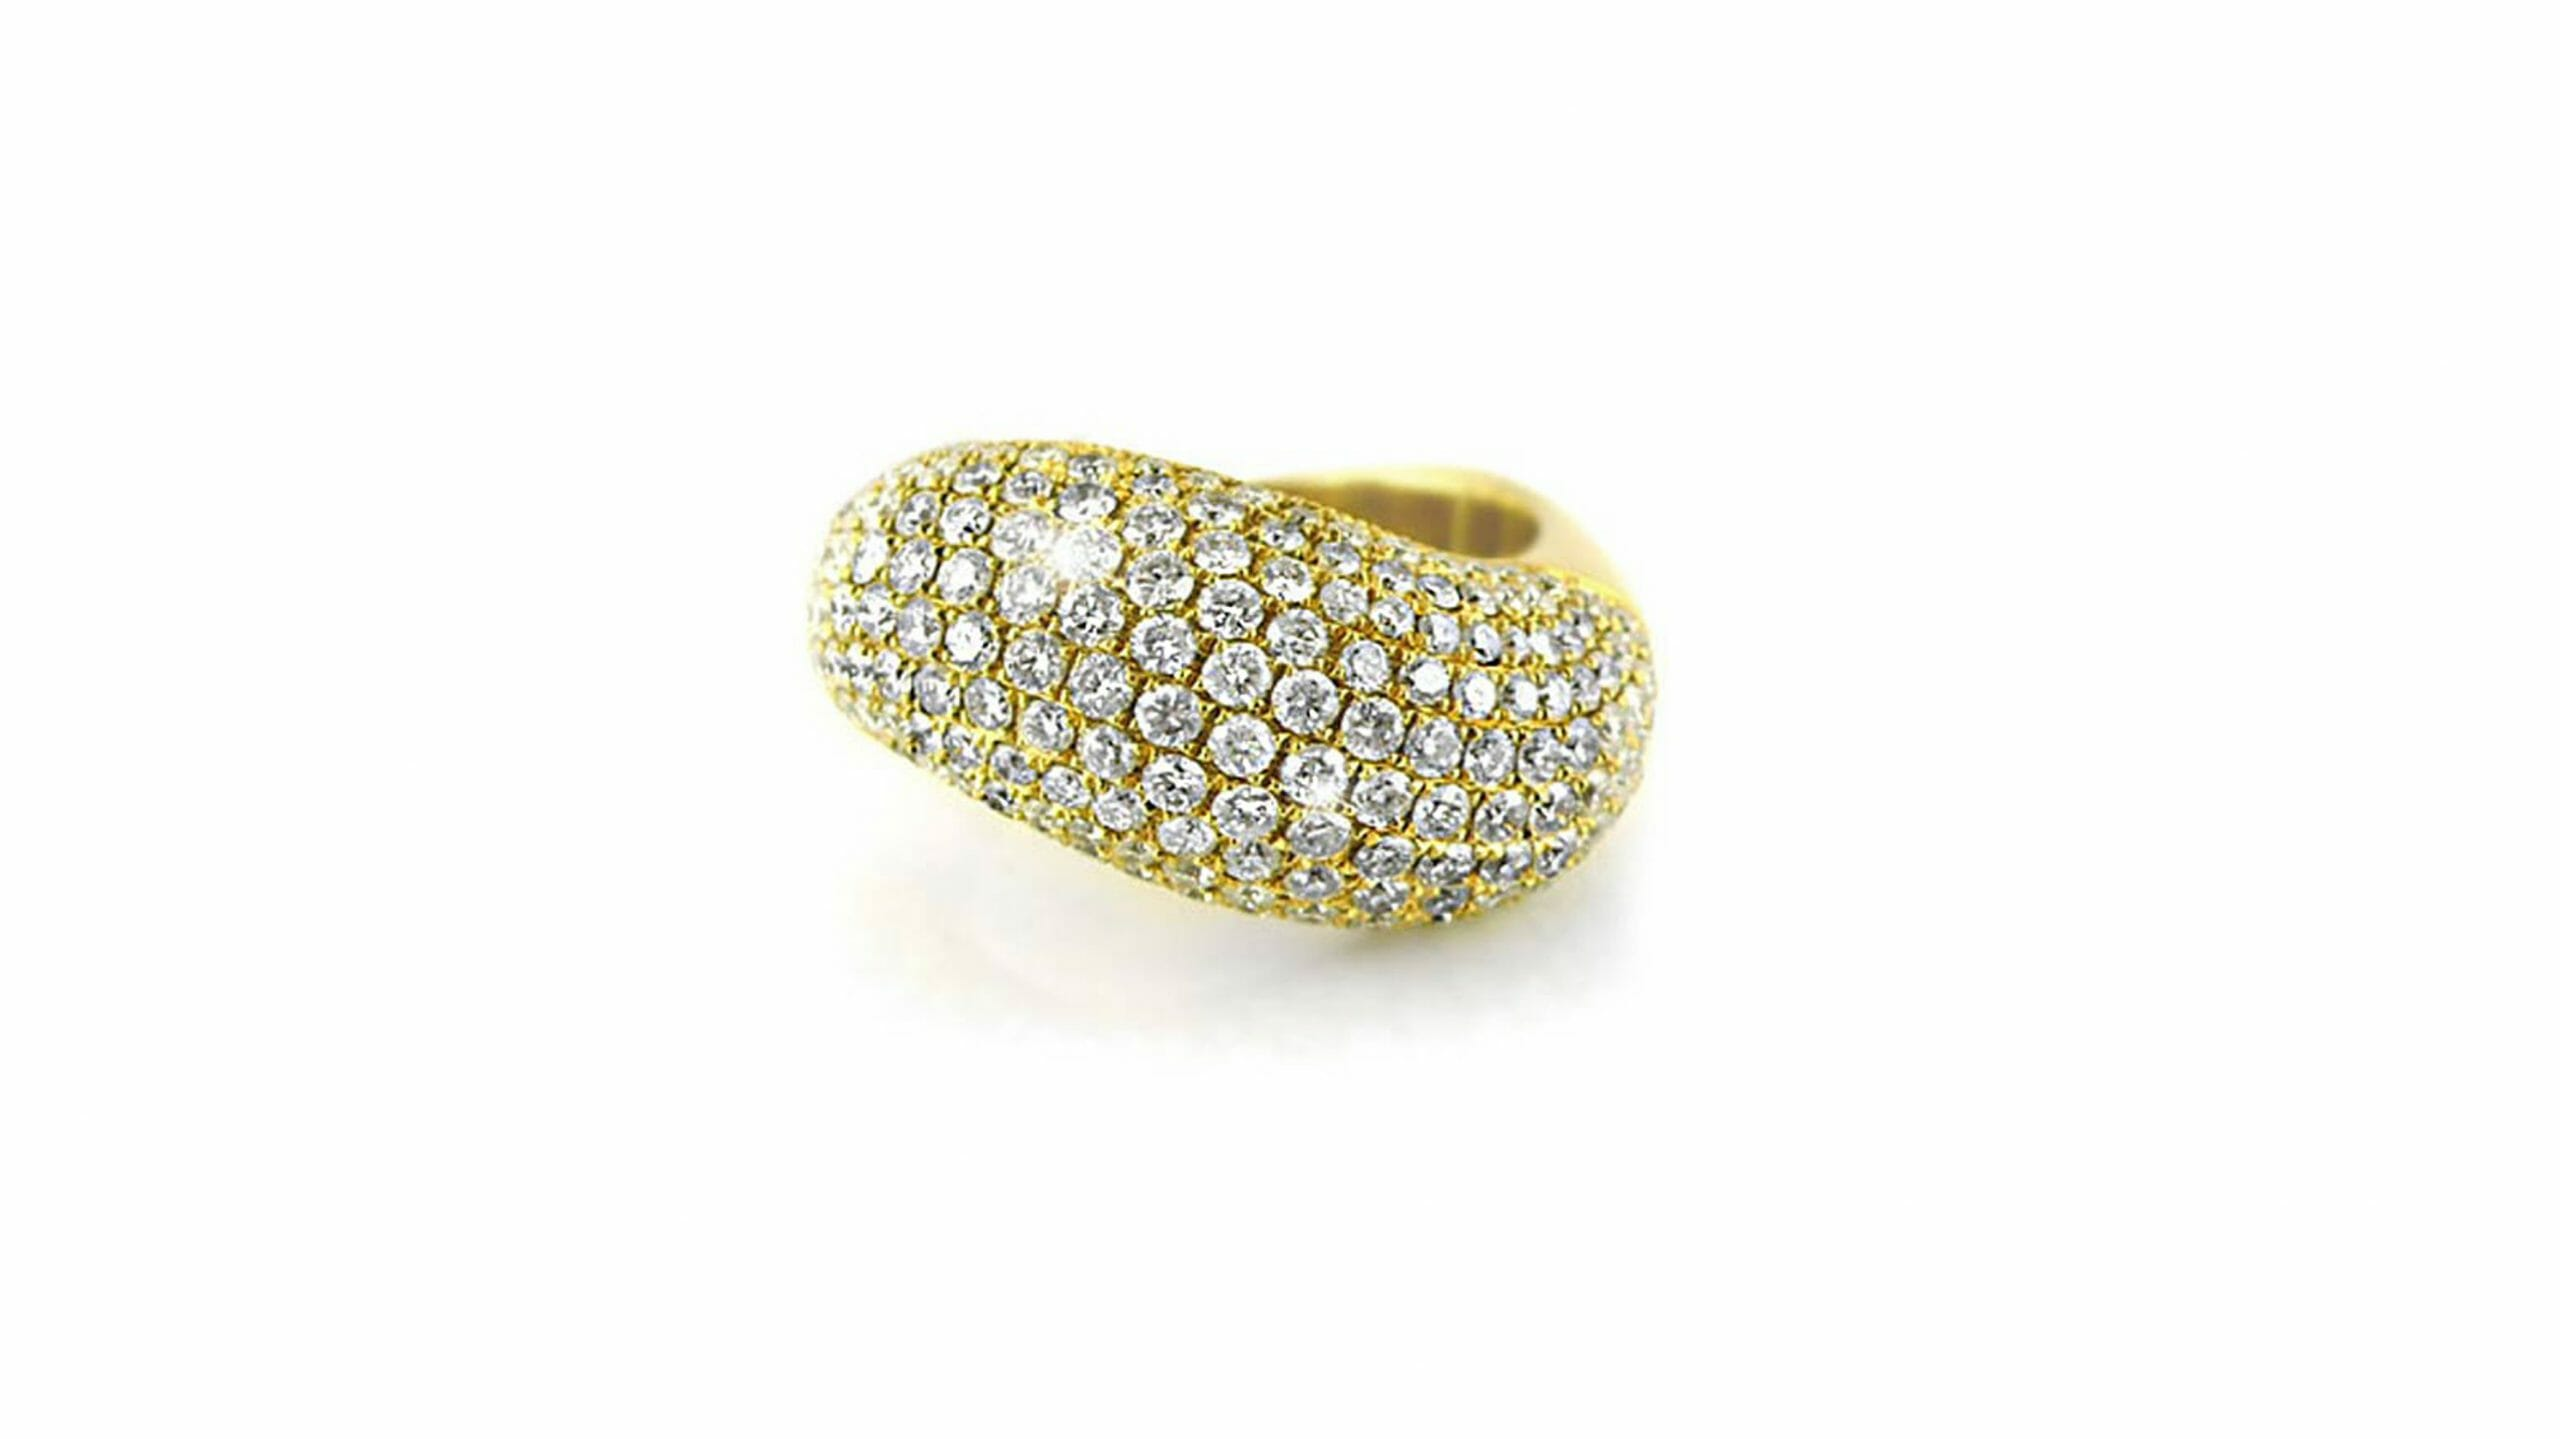 Pave diamond seashell dress ring Set In 18ct Yellow Gold